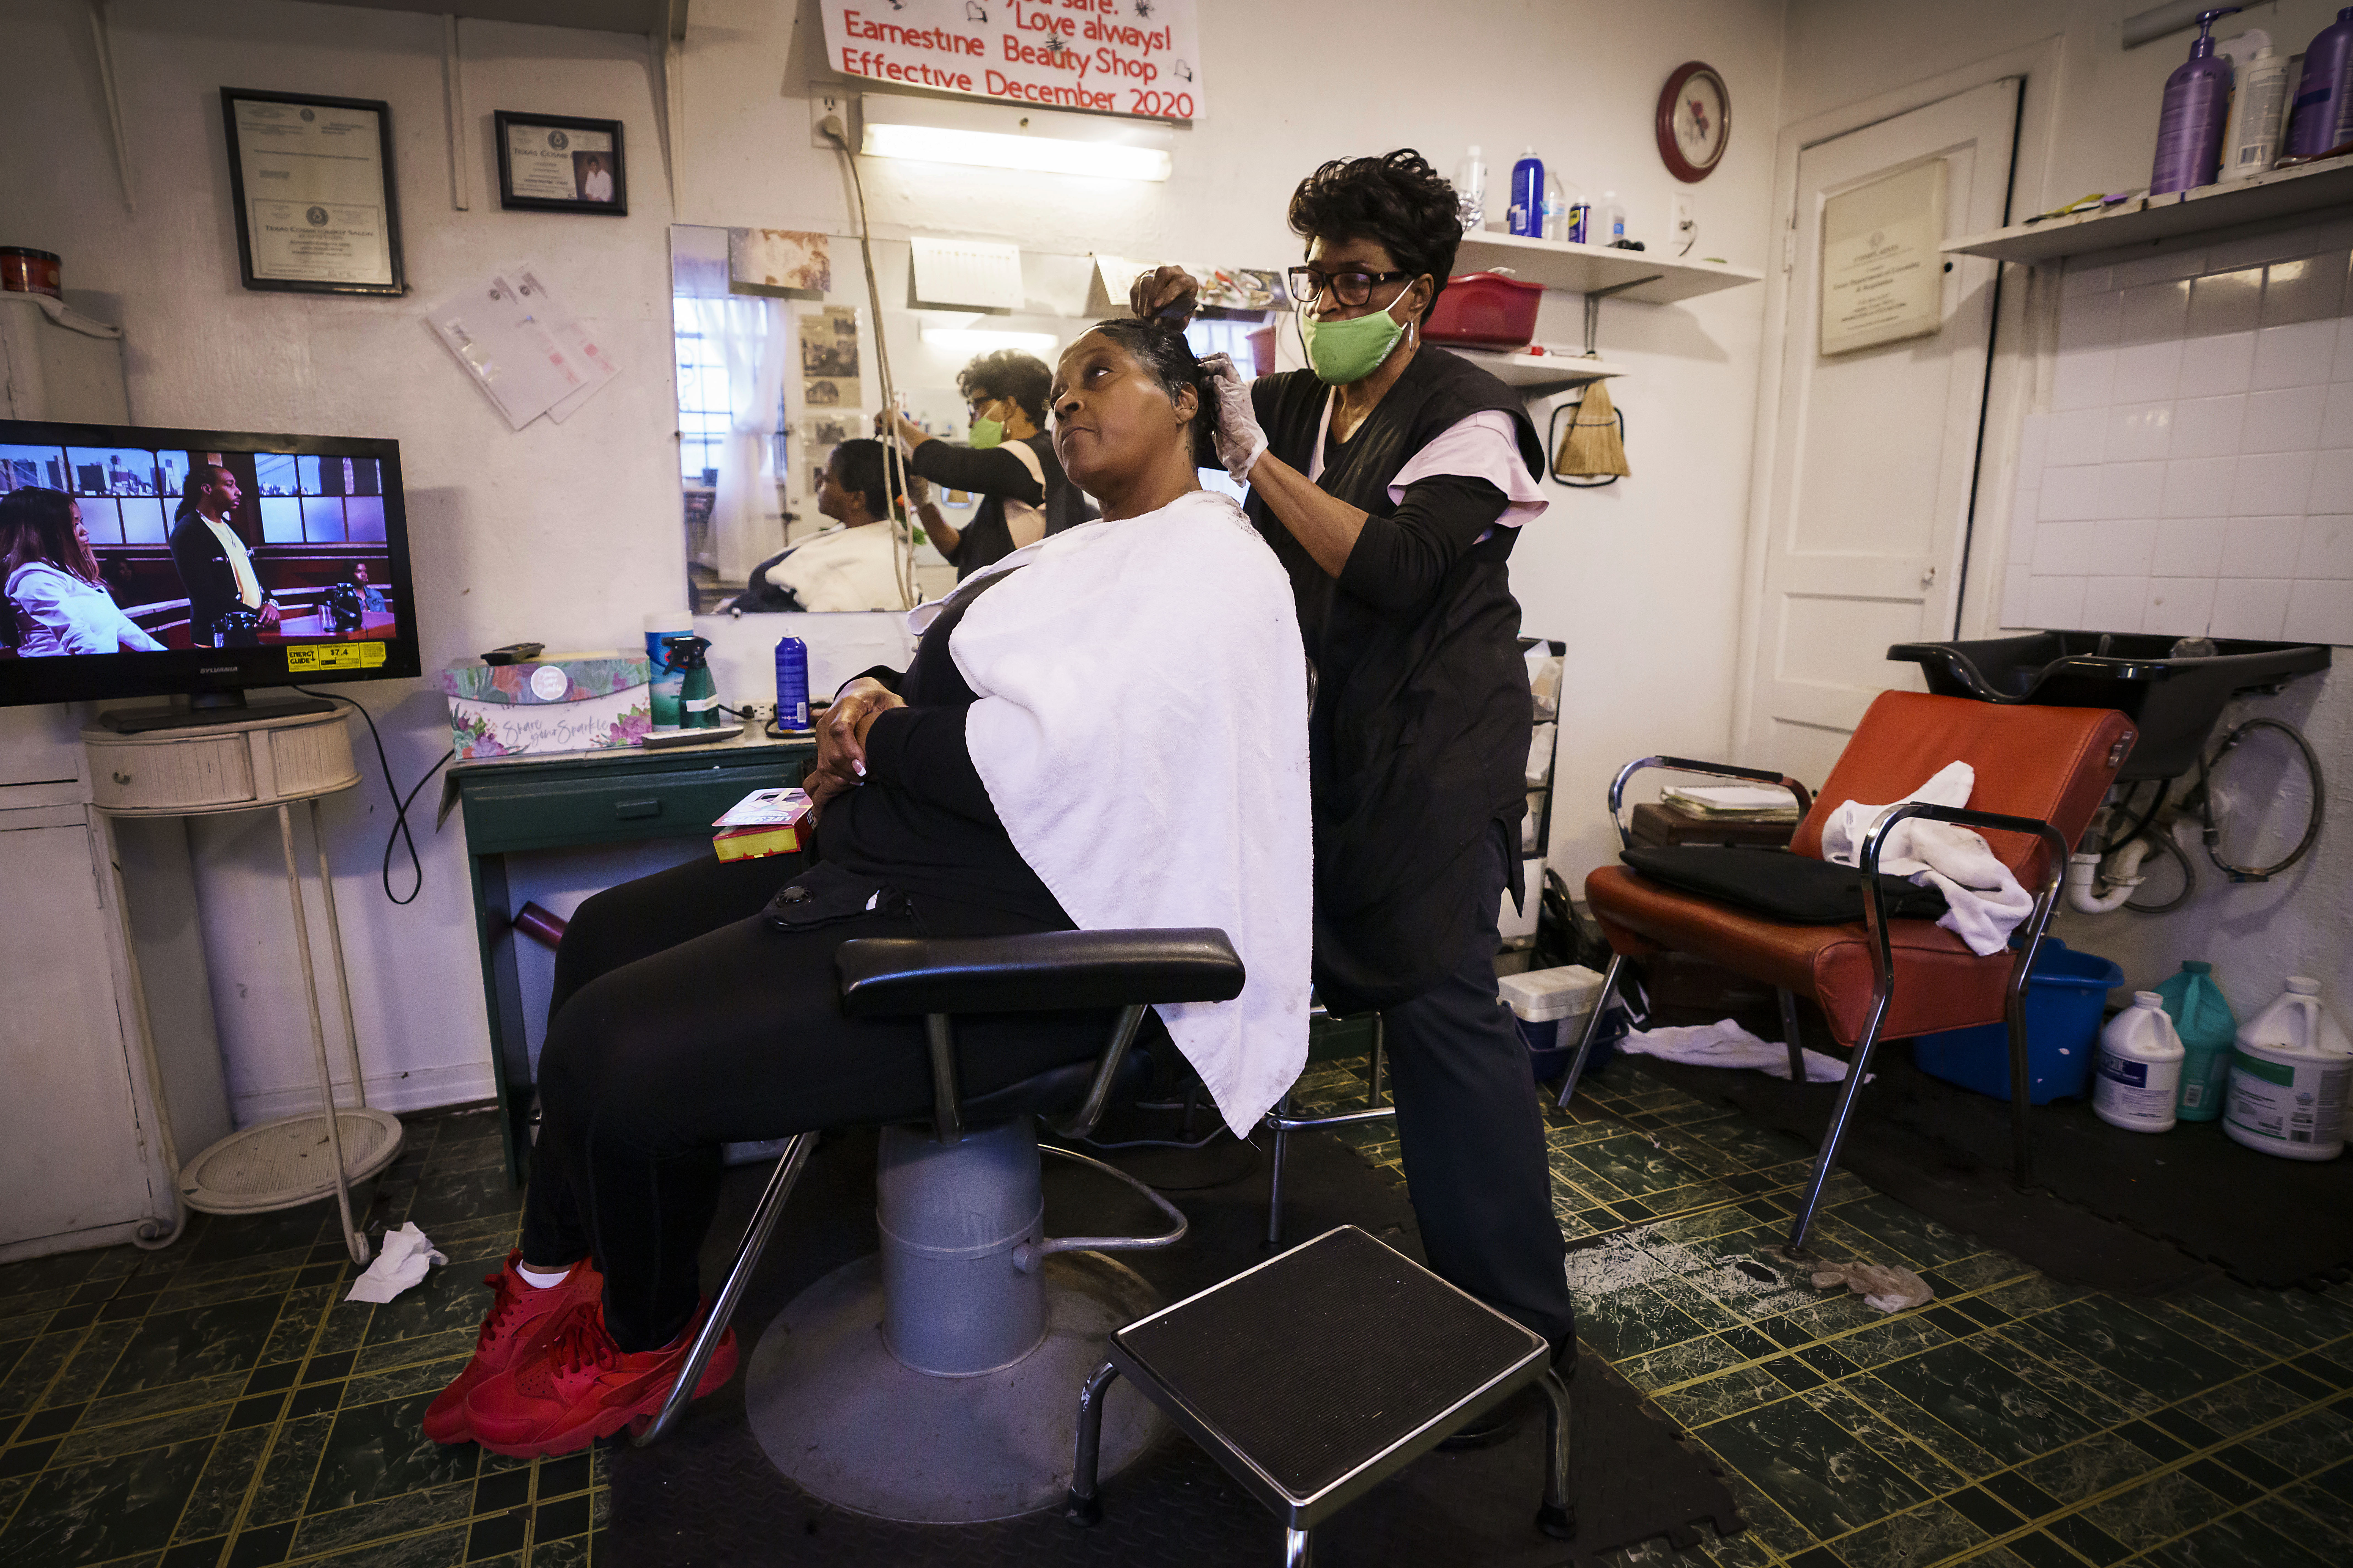 Journey fulfilled' Earnestine's Beauty Shop closes after 9 years ...